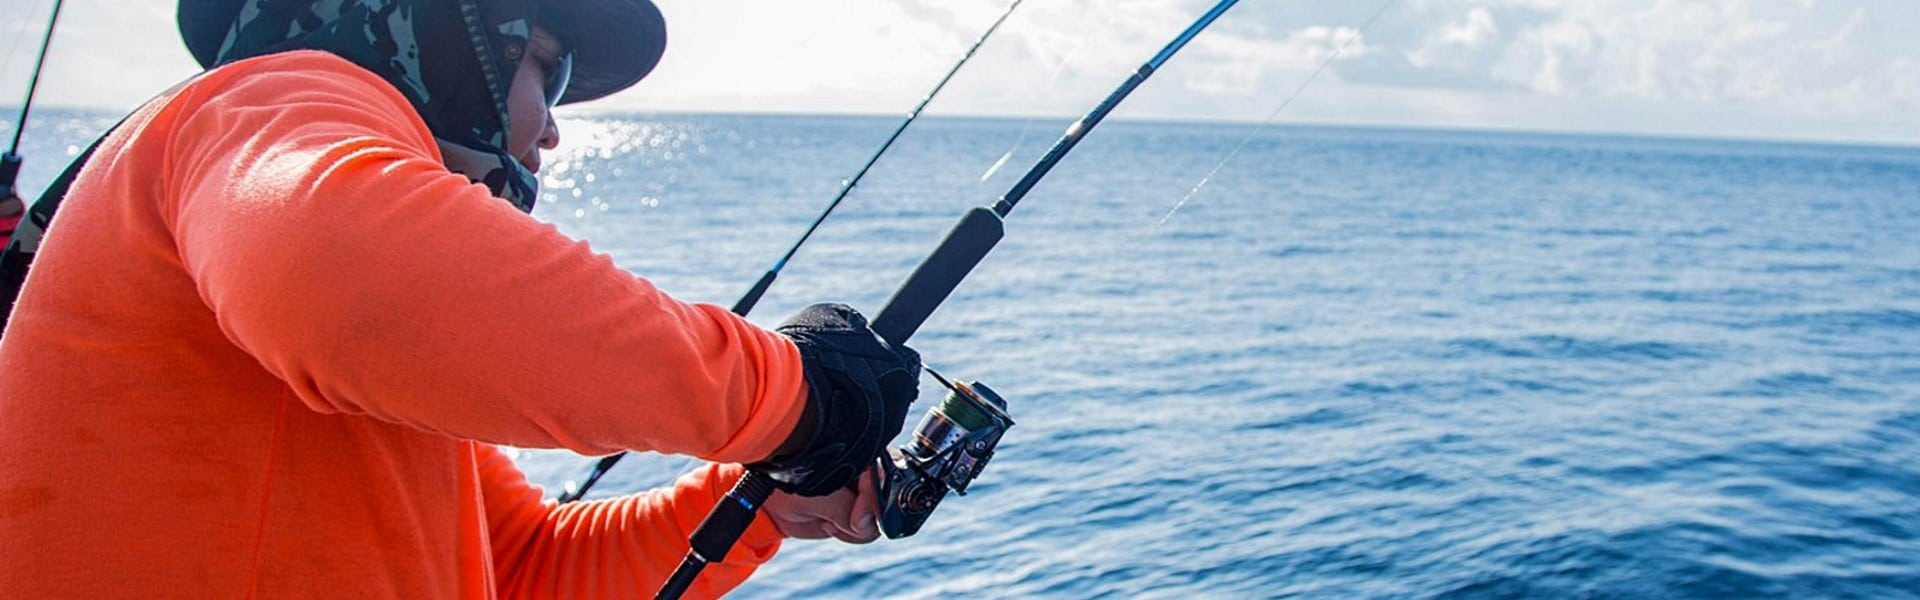 Best Saltwater Fishing Rods Reviewed in Detail